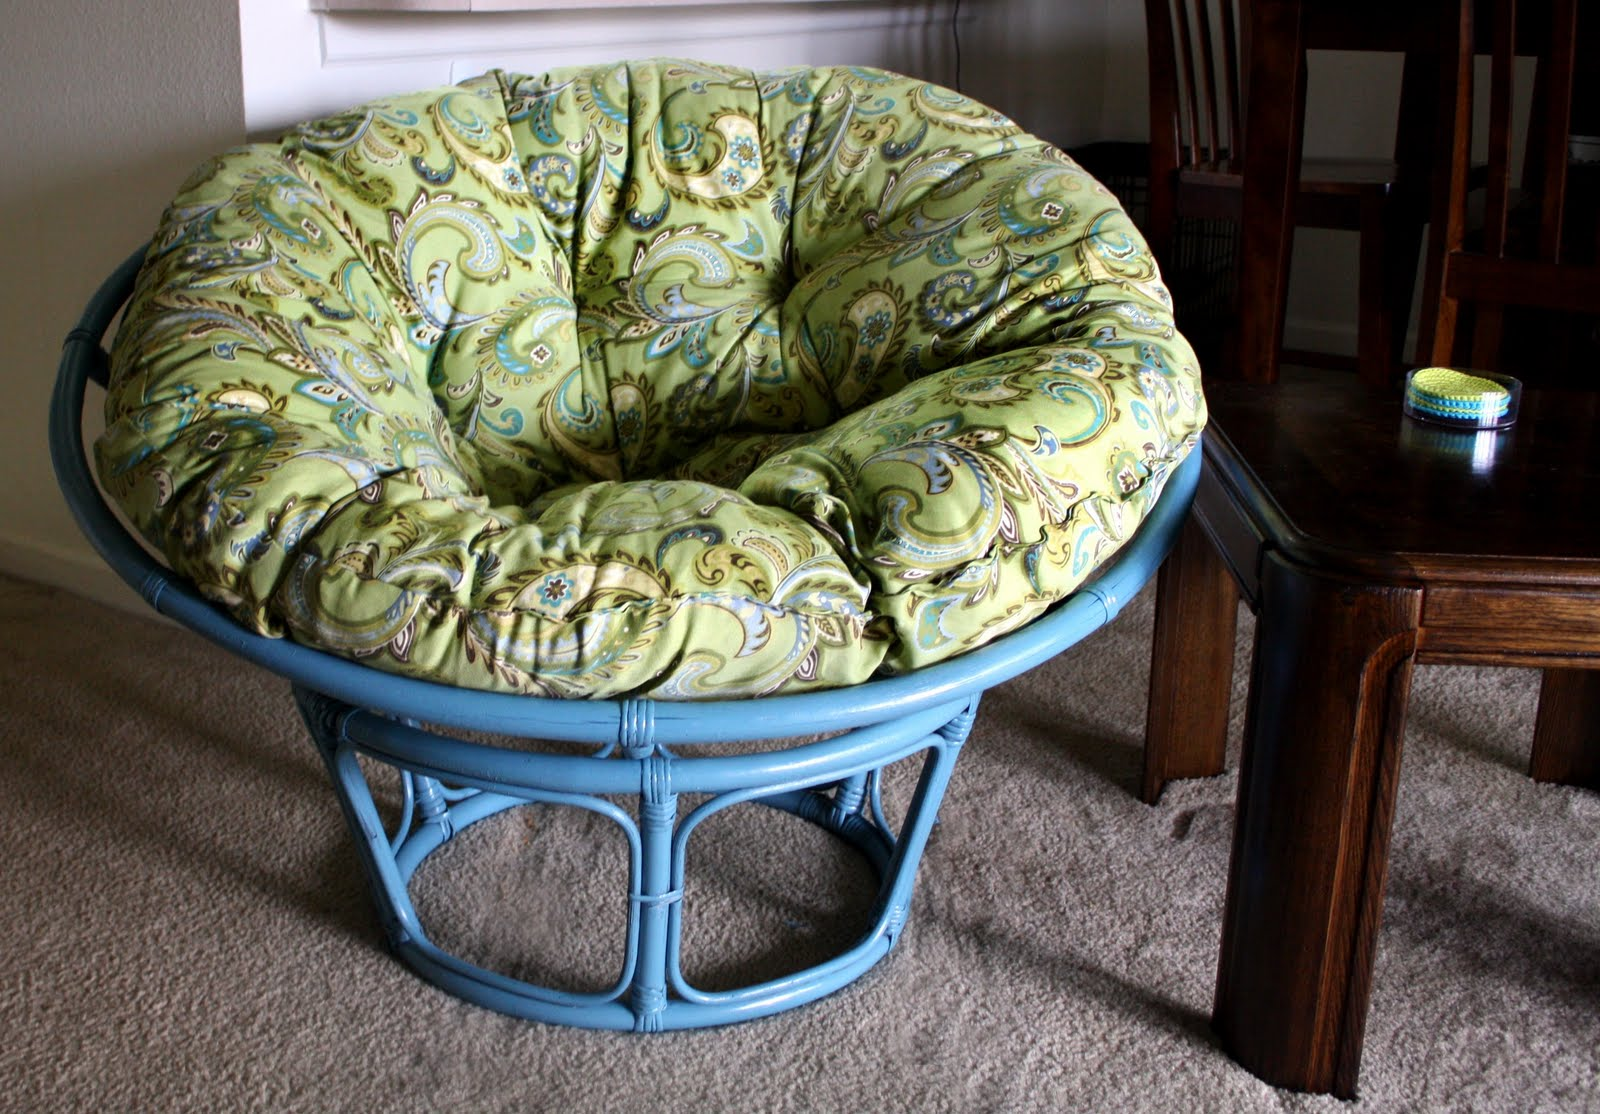 papasan chair cushion covers diy best for hip replacement tails to tell another man 39s trash